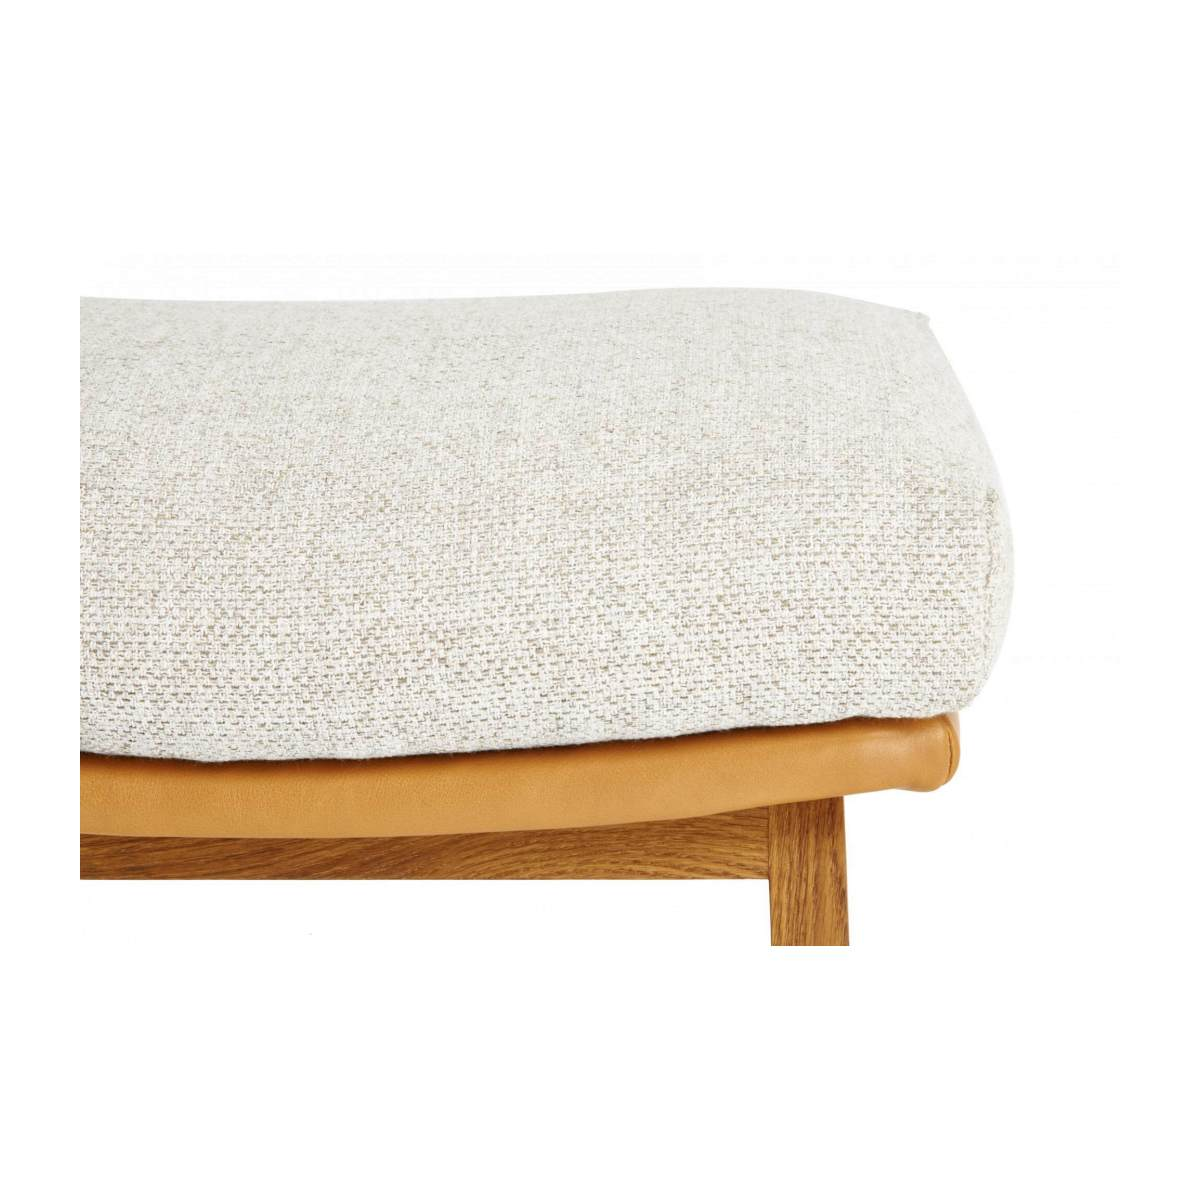 Footstool in Ancio fabric, nature et cuir marron with oak legs n°4